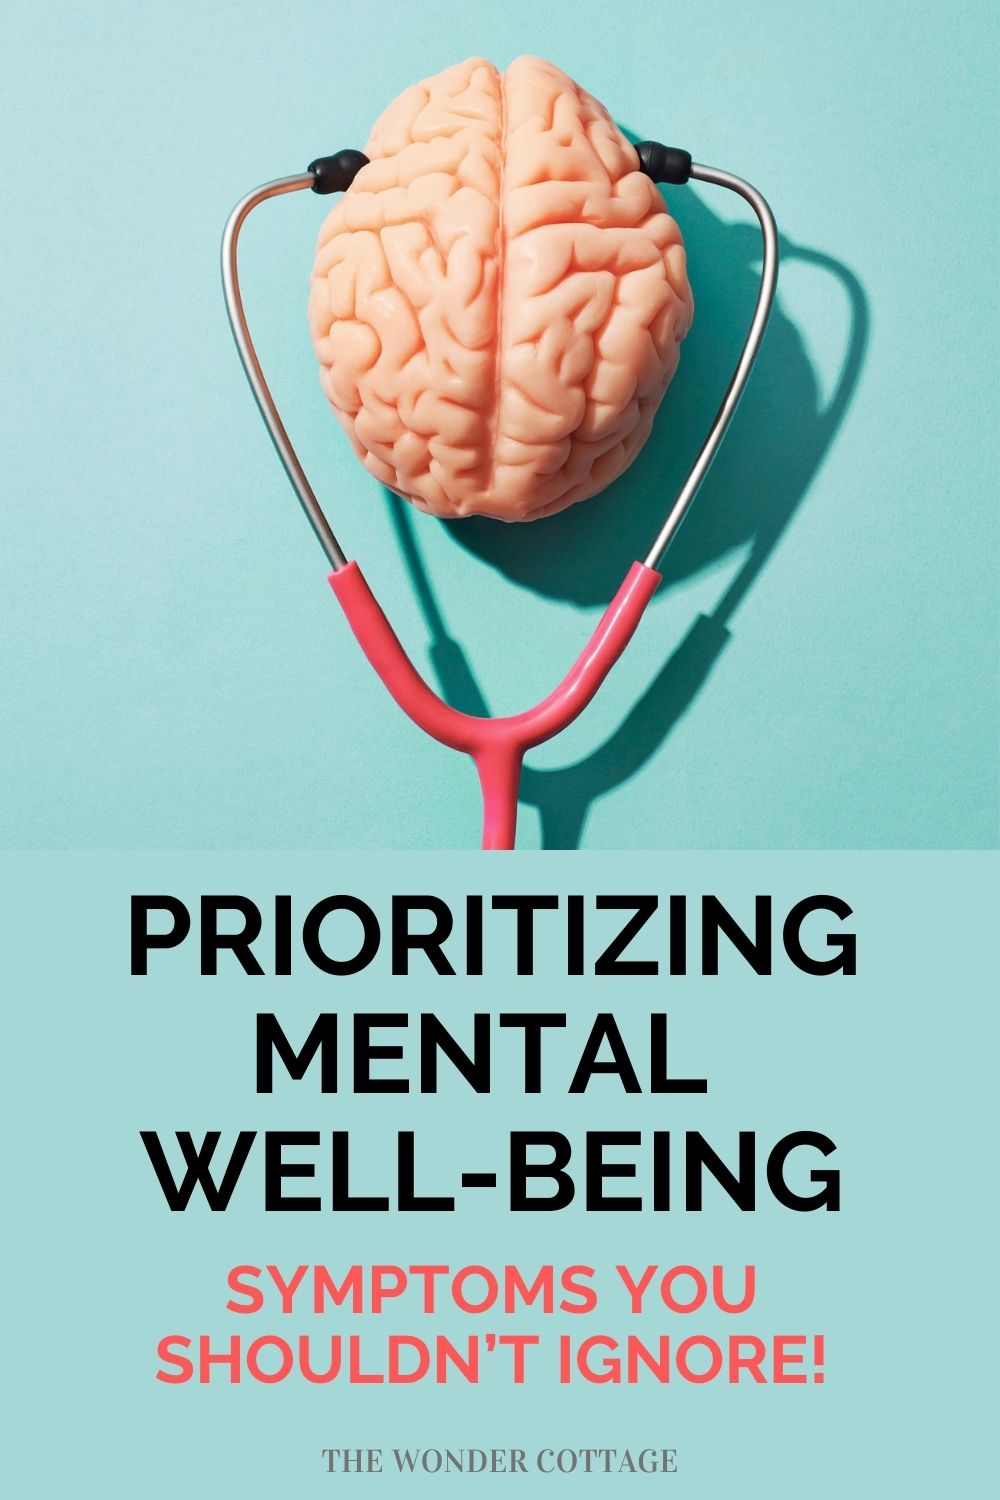 prioritizing mental well-being: symptoms you shouldn't ignore